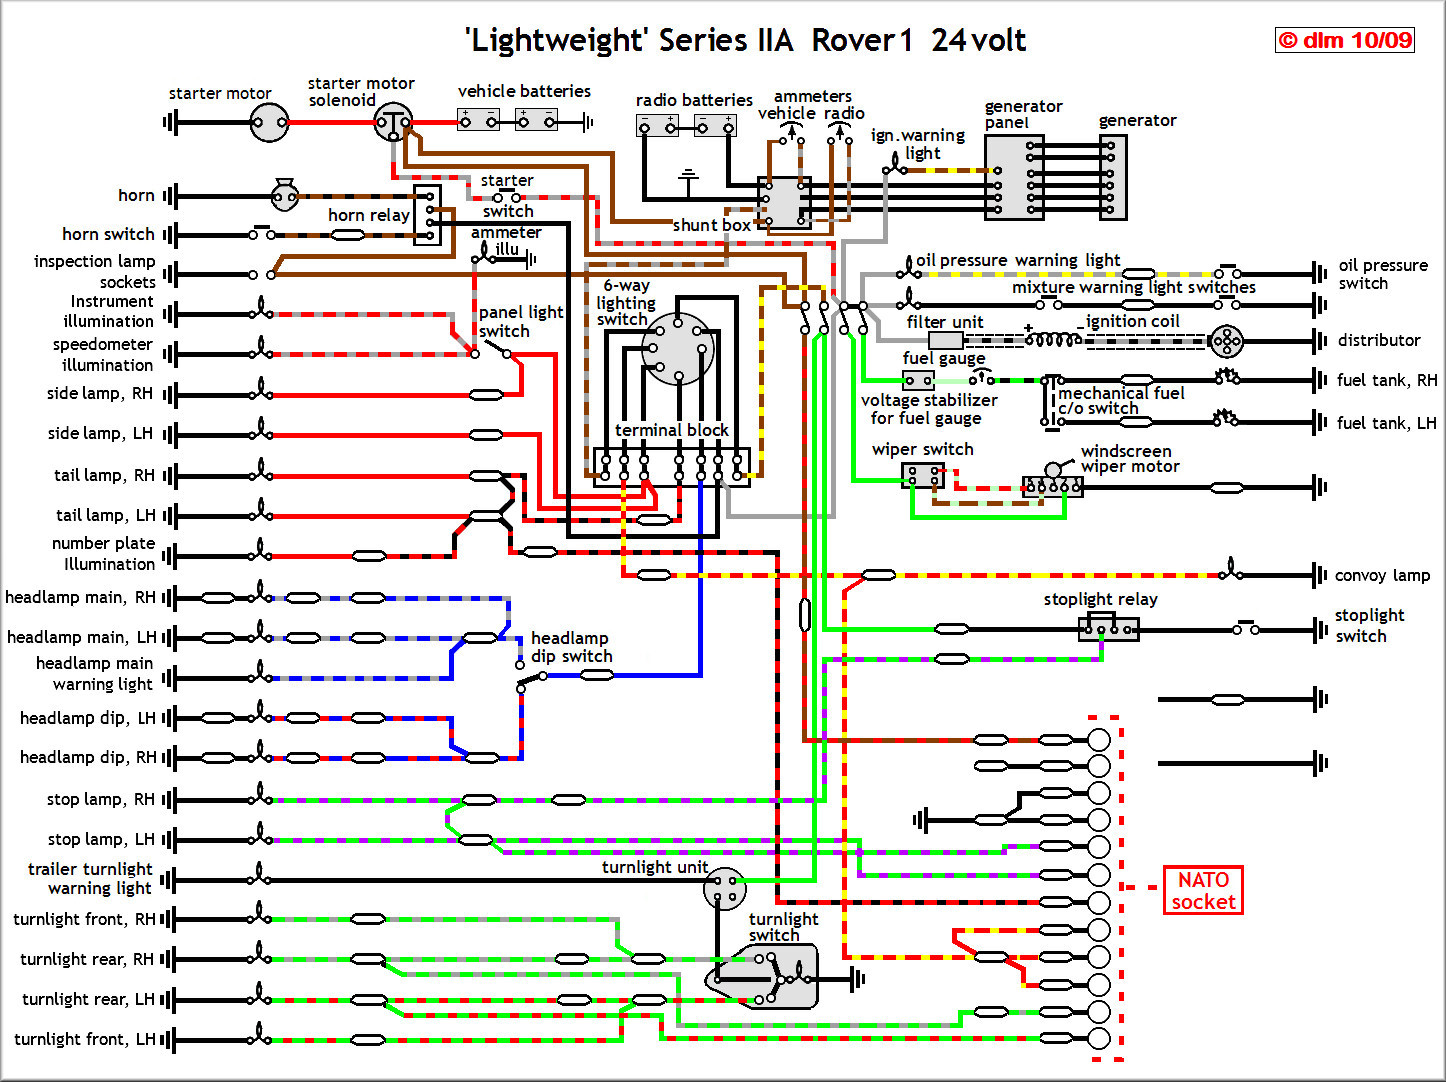 ... Series 2A, Rover 1, 24v Circuit Diagram